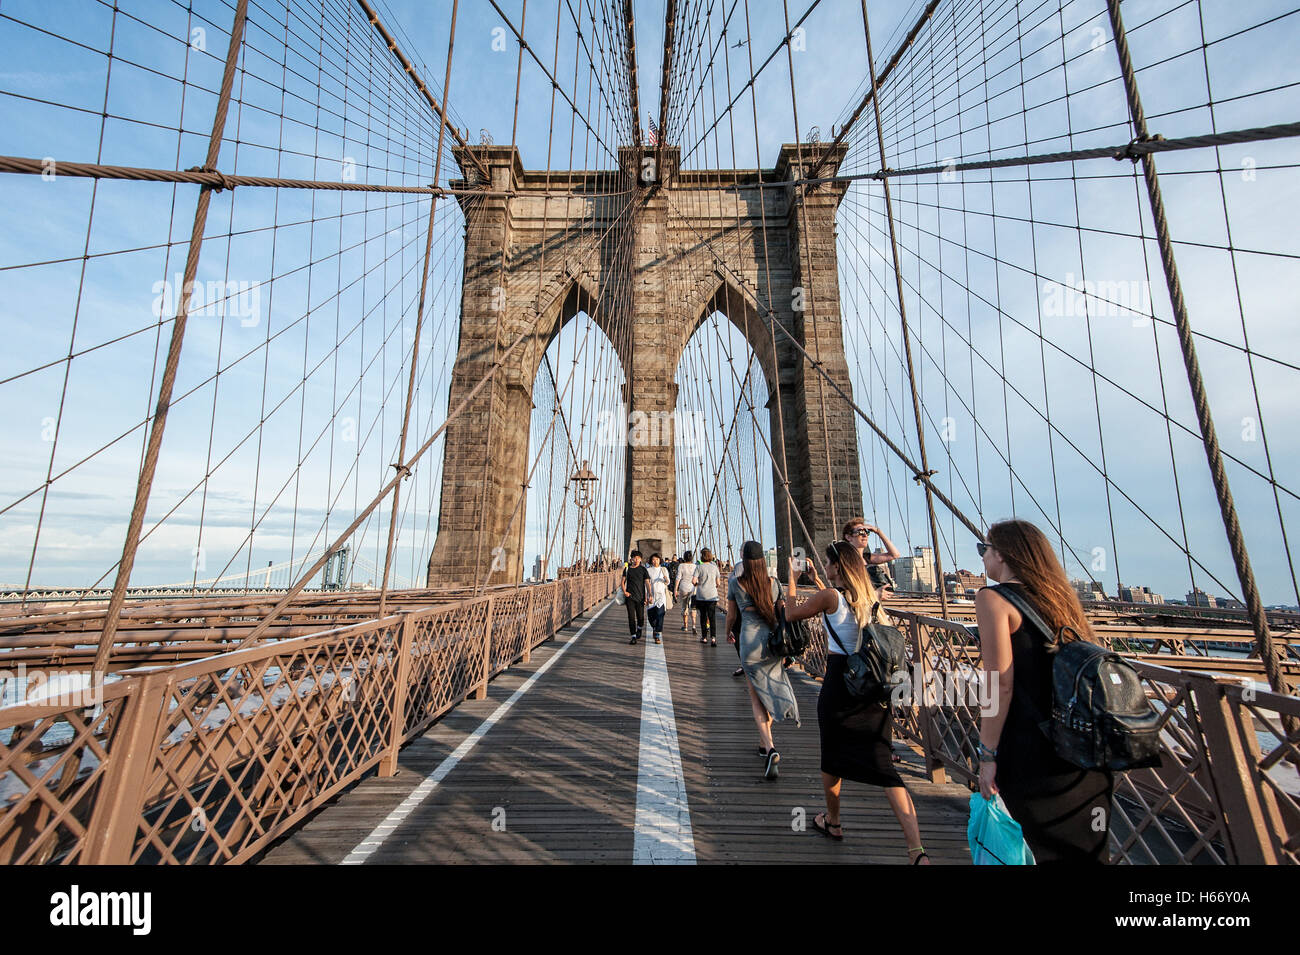 Brooklyn Bridge, steel-wire suspension bridge, East River, connects boroughs Brooklyn and Manhattan, New York City - Stock Image